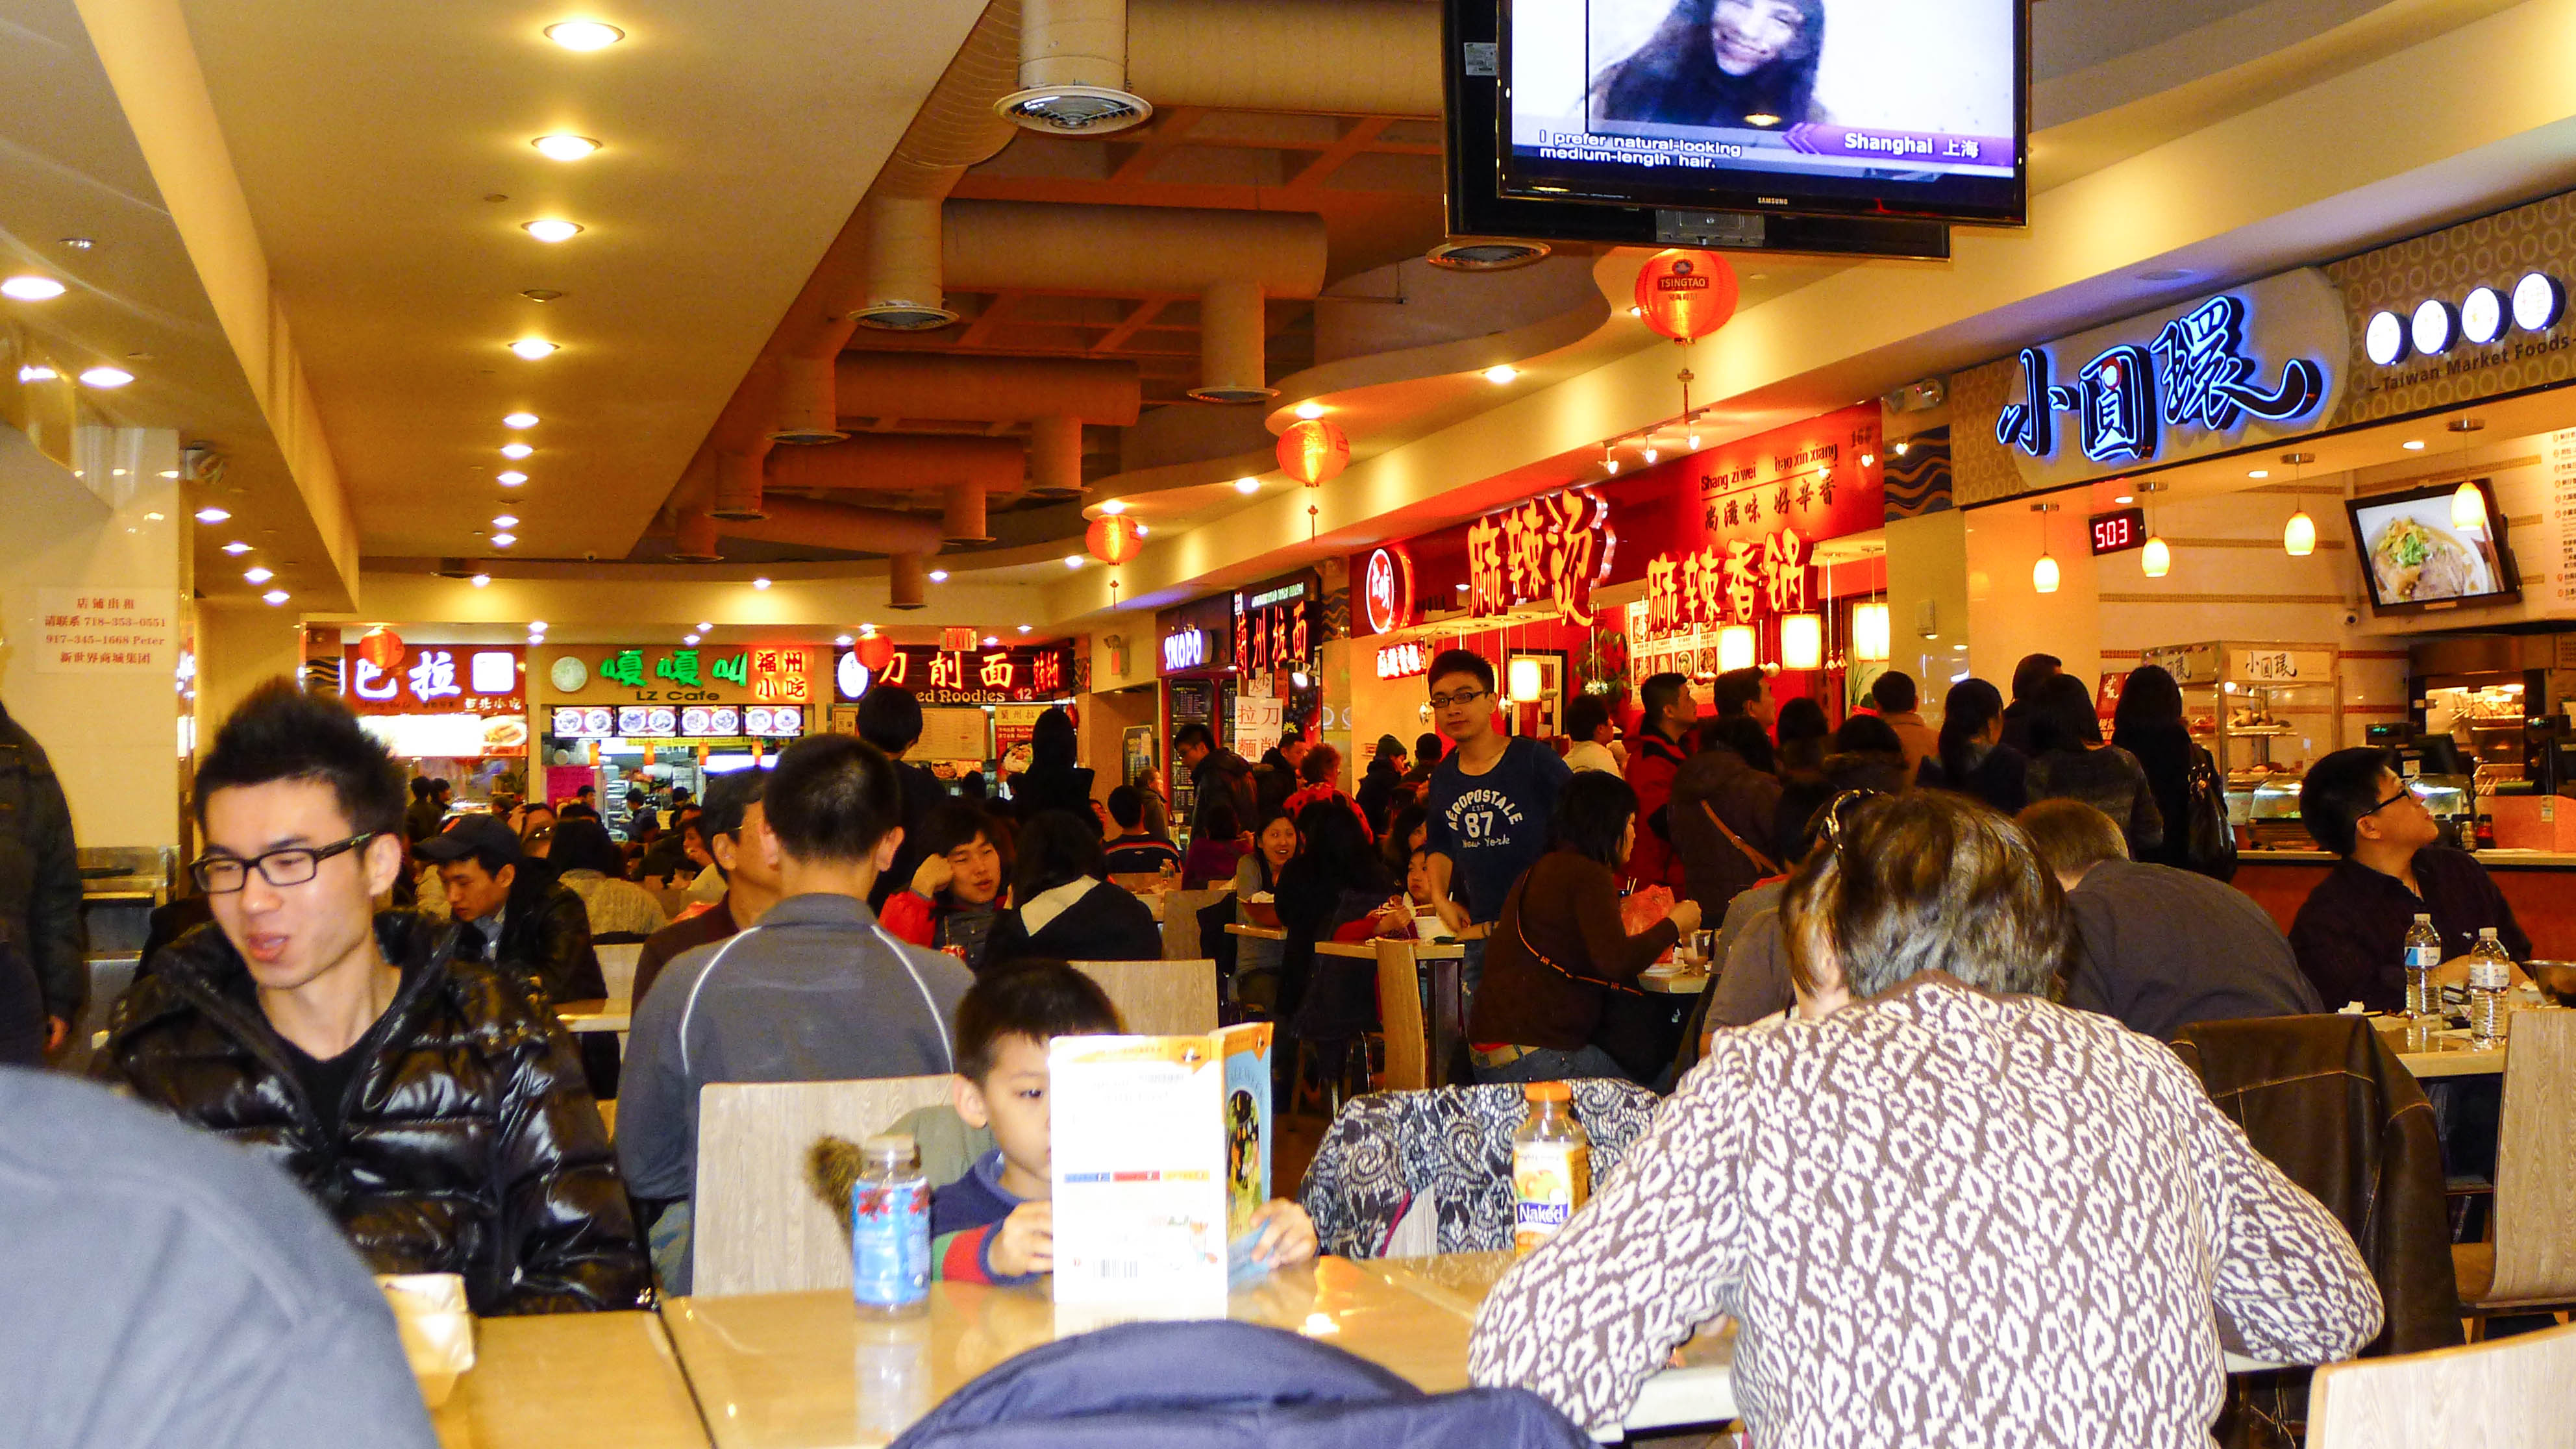 New world mall food court flushing queens ny for 101 taiwanese cuisine flushing